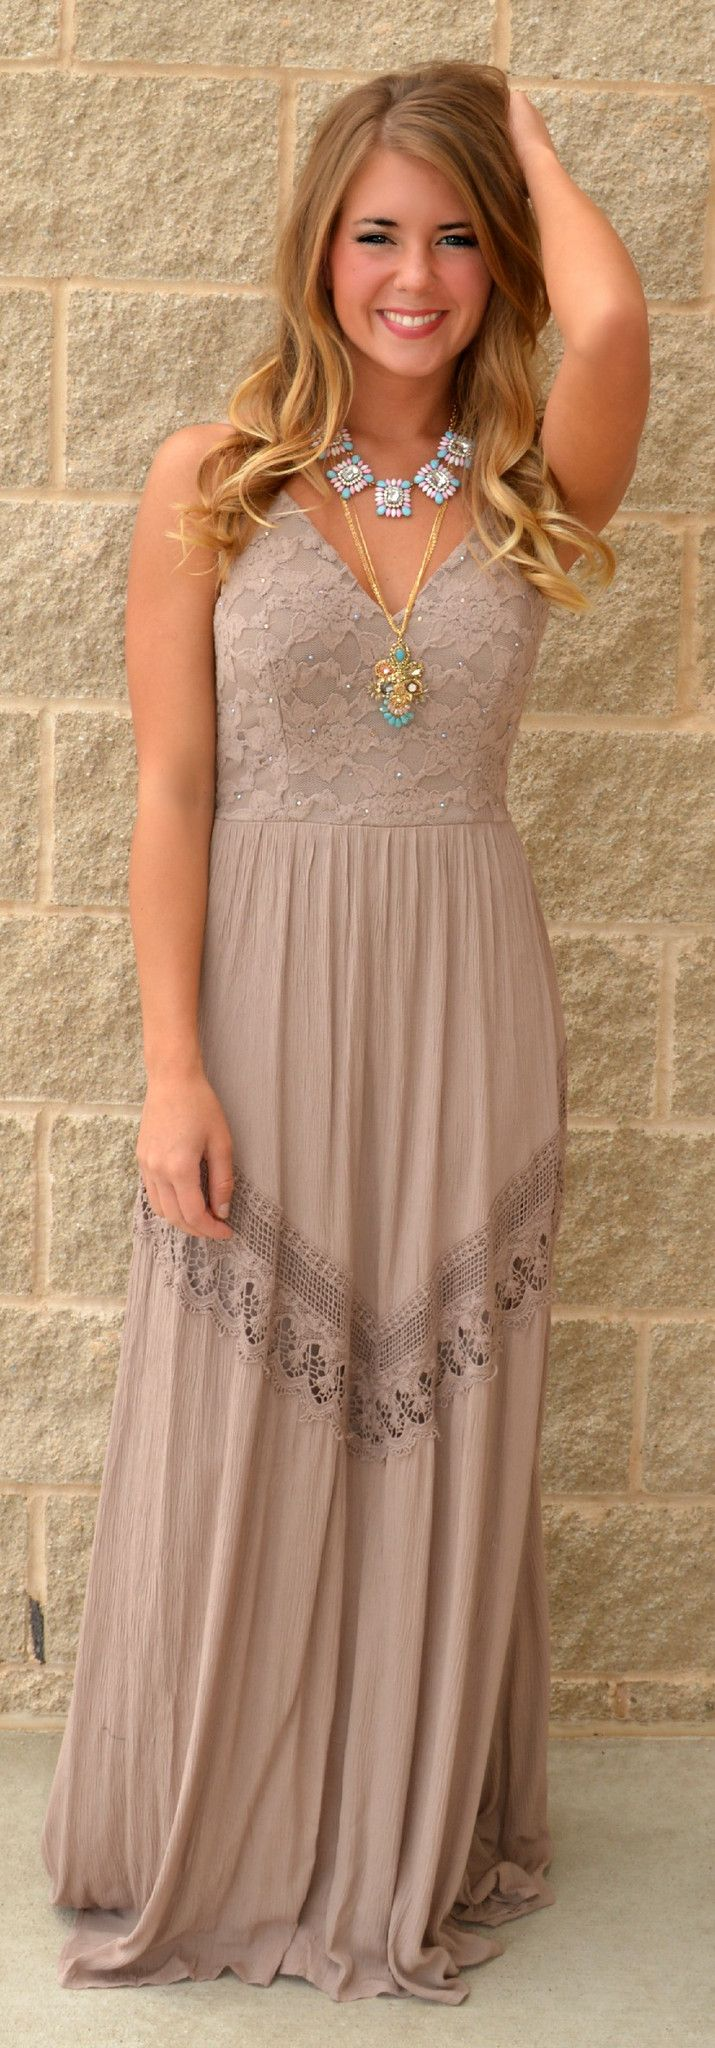 Taupe Maxi Dress with Jewel-Embellished Lace Bodice and Single Lace Chevron